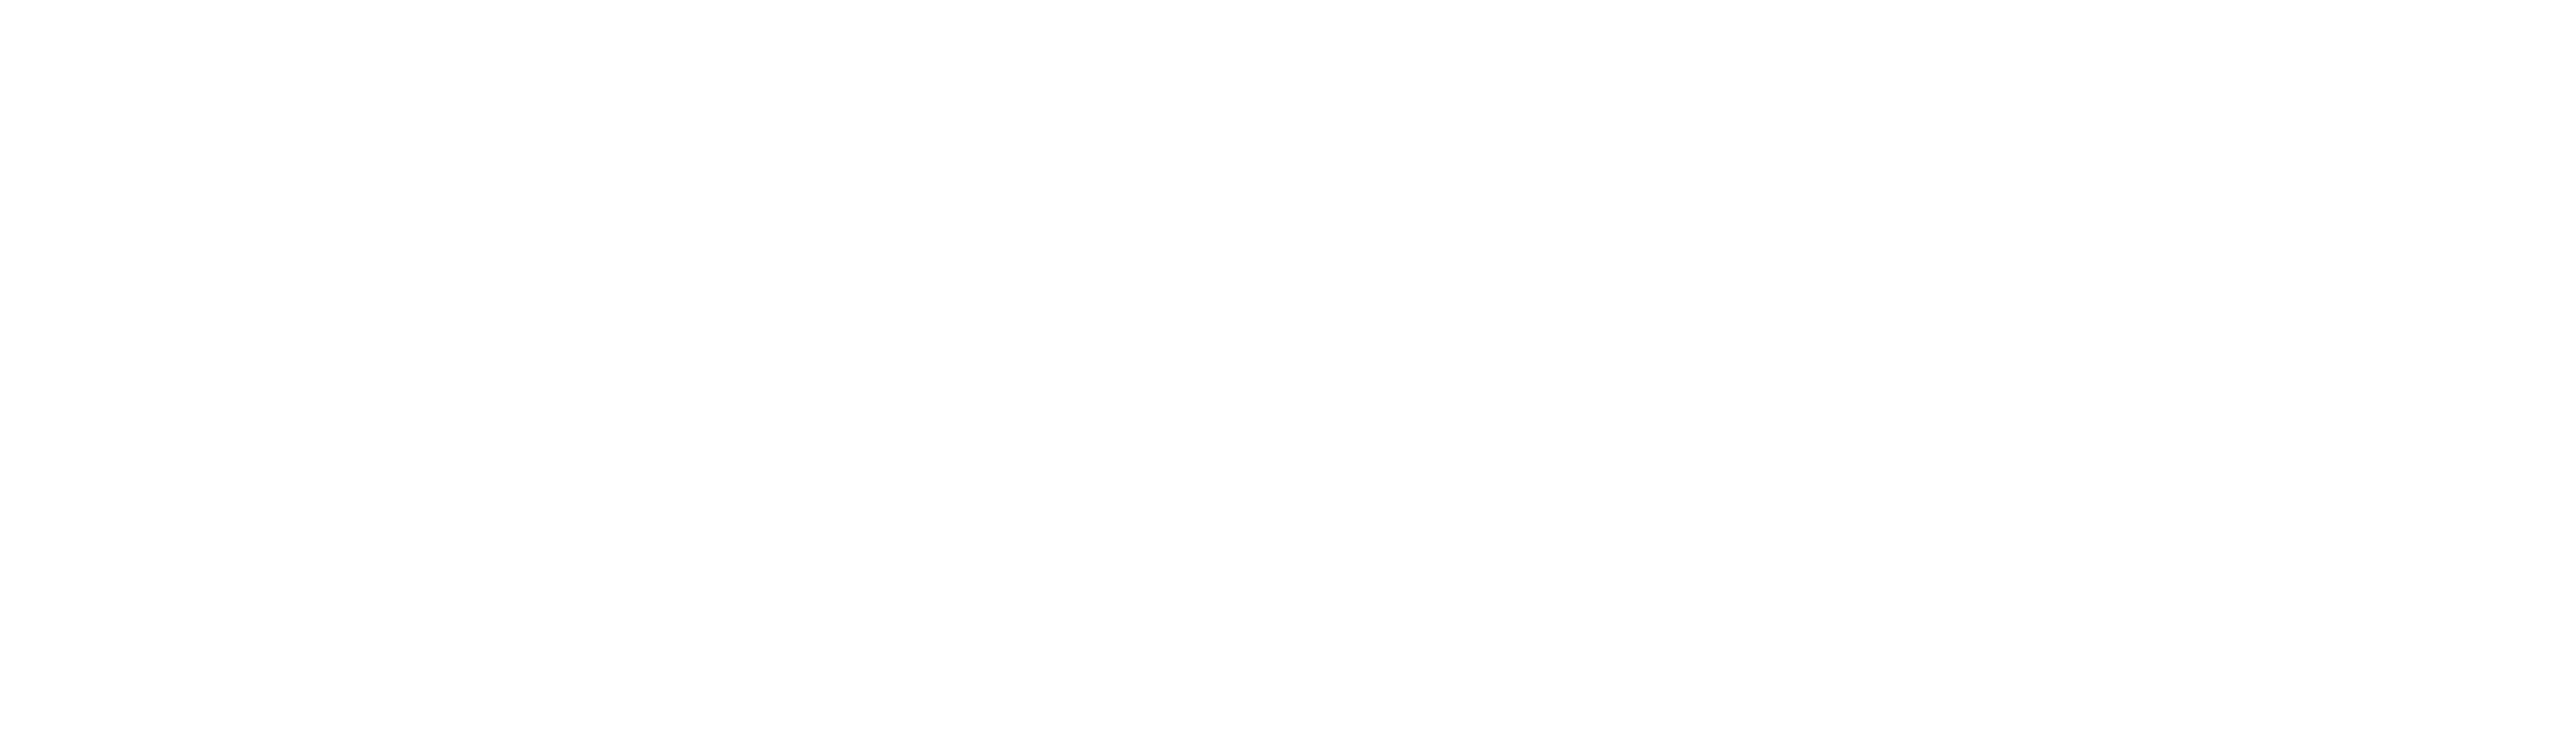 Screen CanterburyNZ Logo